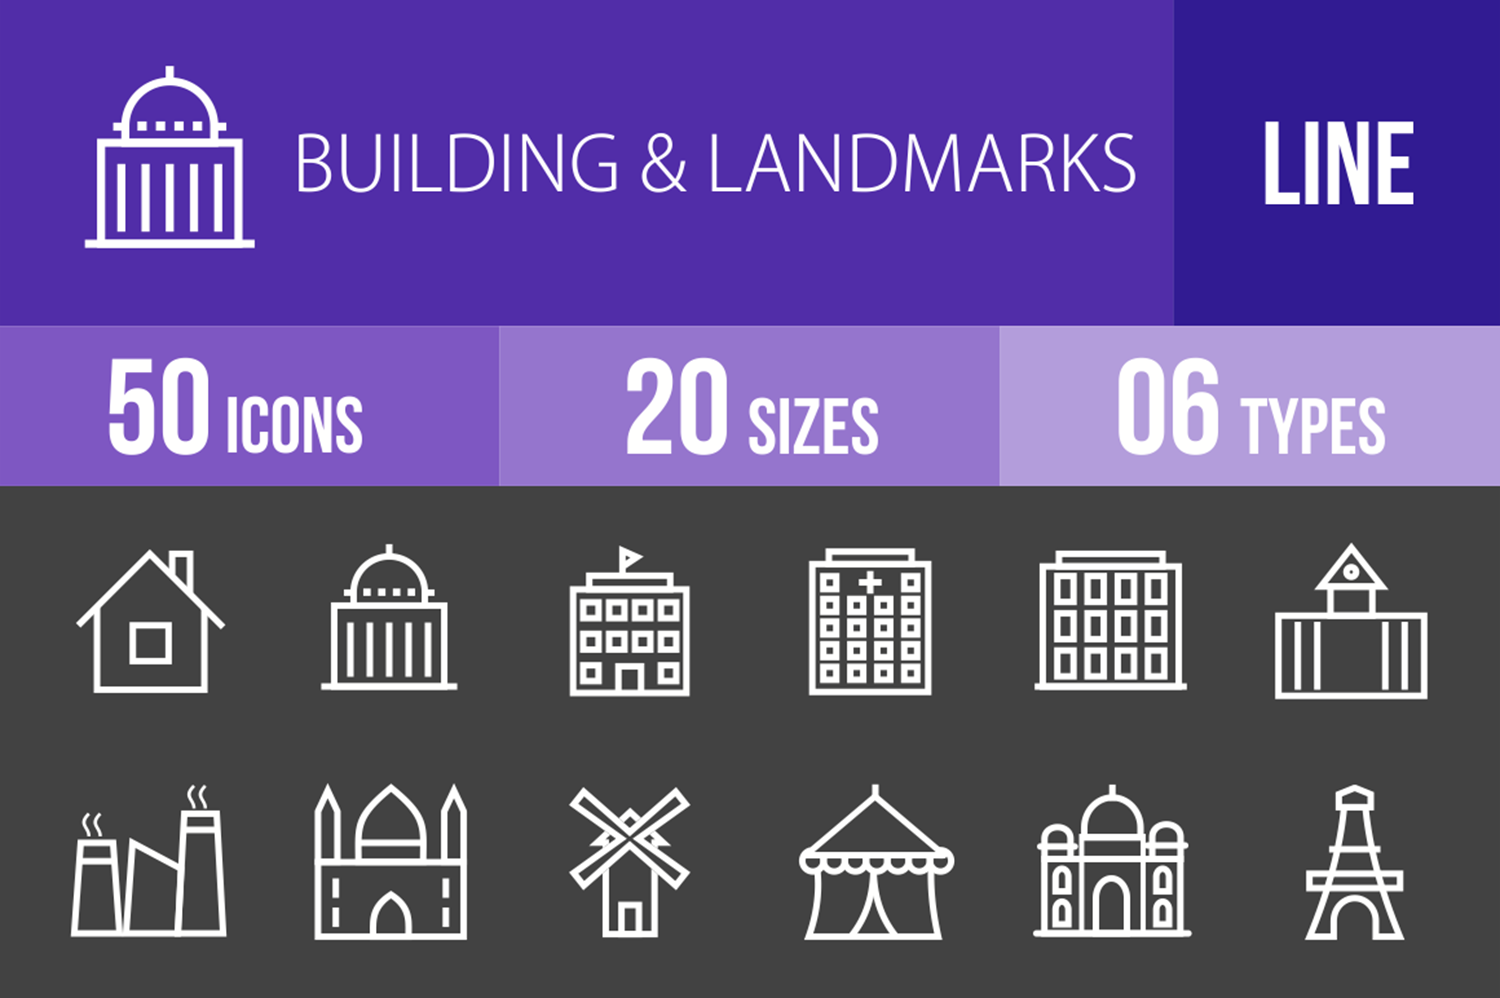 50 Buildings & Landmarks Line Inverted Icons example image 1